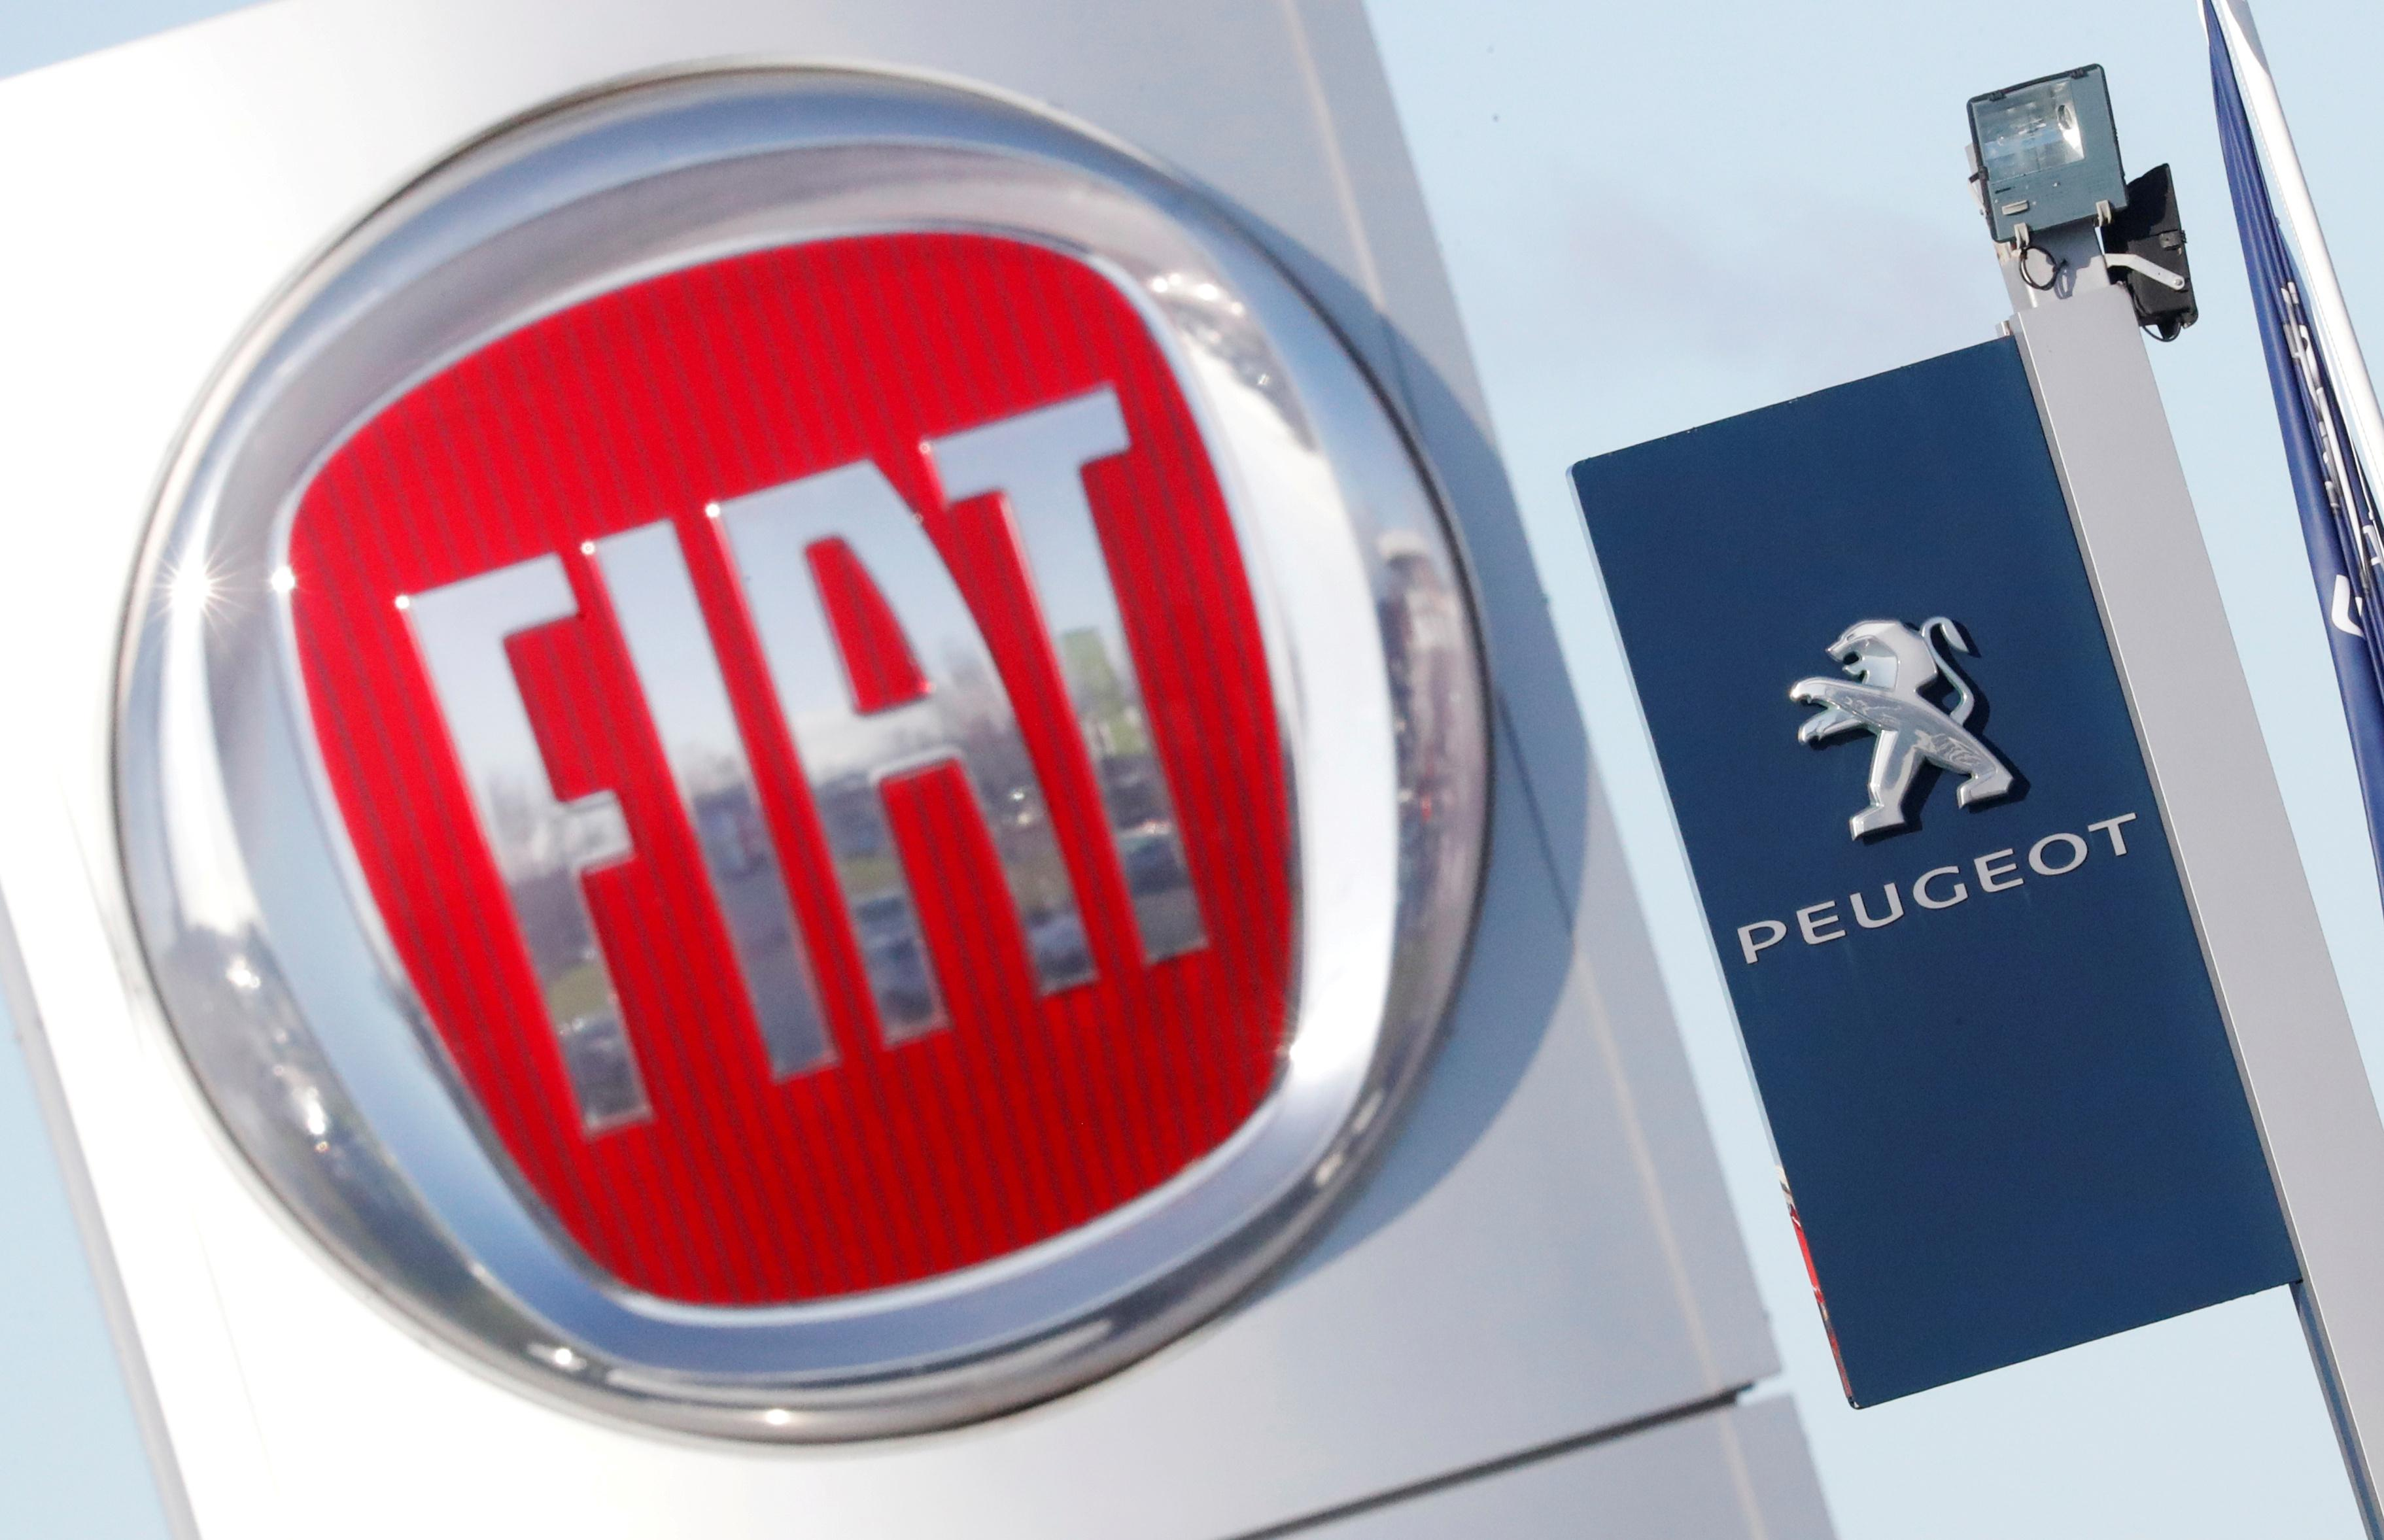 PSA still aiming to sign MoU with FCA in December: source